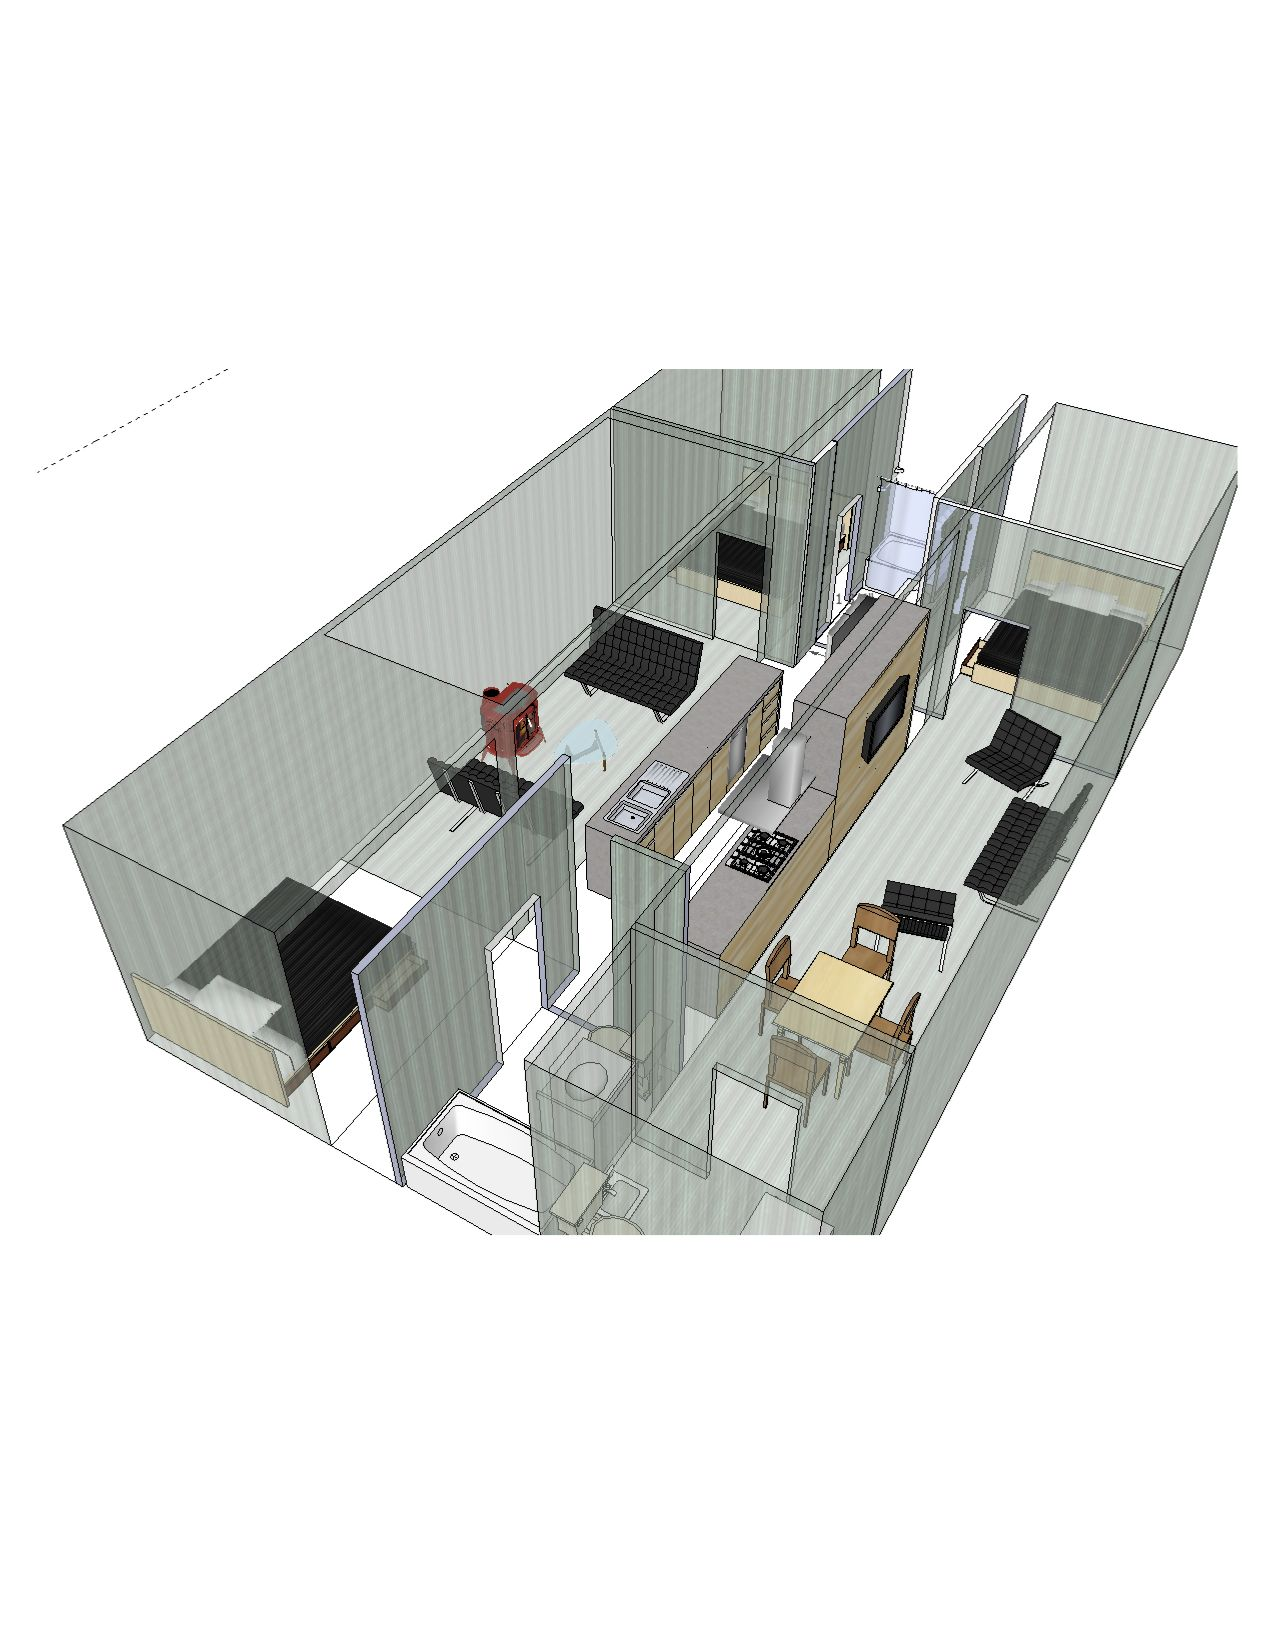 3 Containers 40ft X 8ft X 10 Ft High Container House Container House Design Sea Container Homes